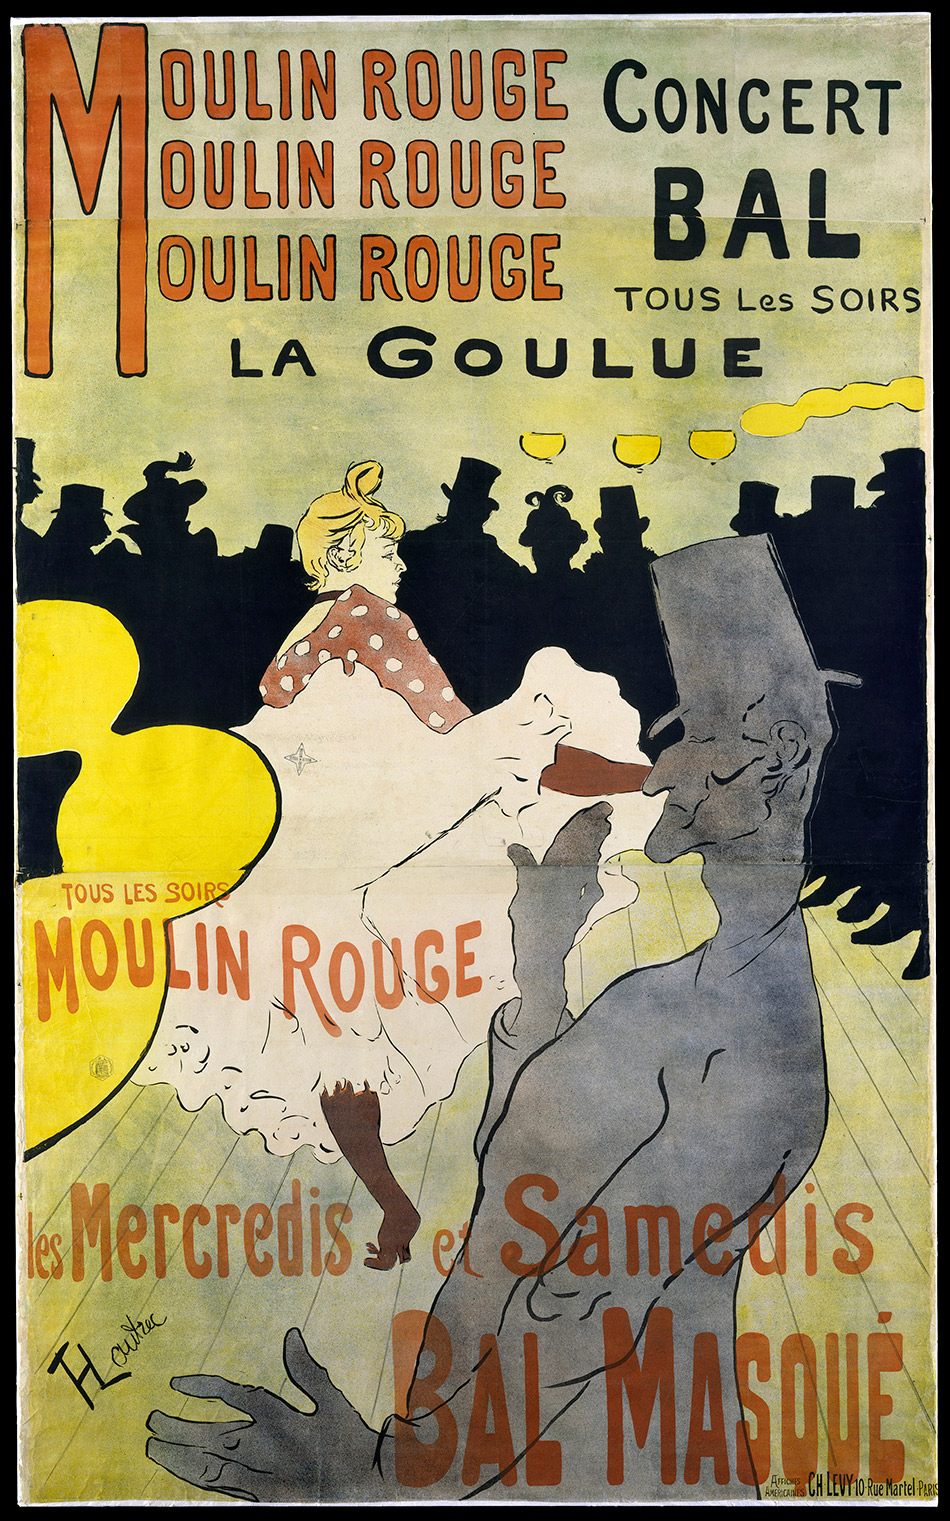 TOULOUSE-LAUTREC AND THE STARS OF PARIS – PATRONS